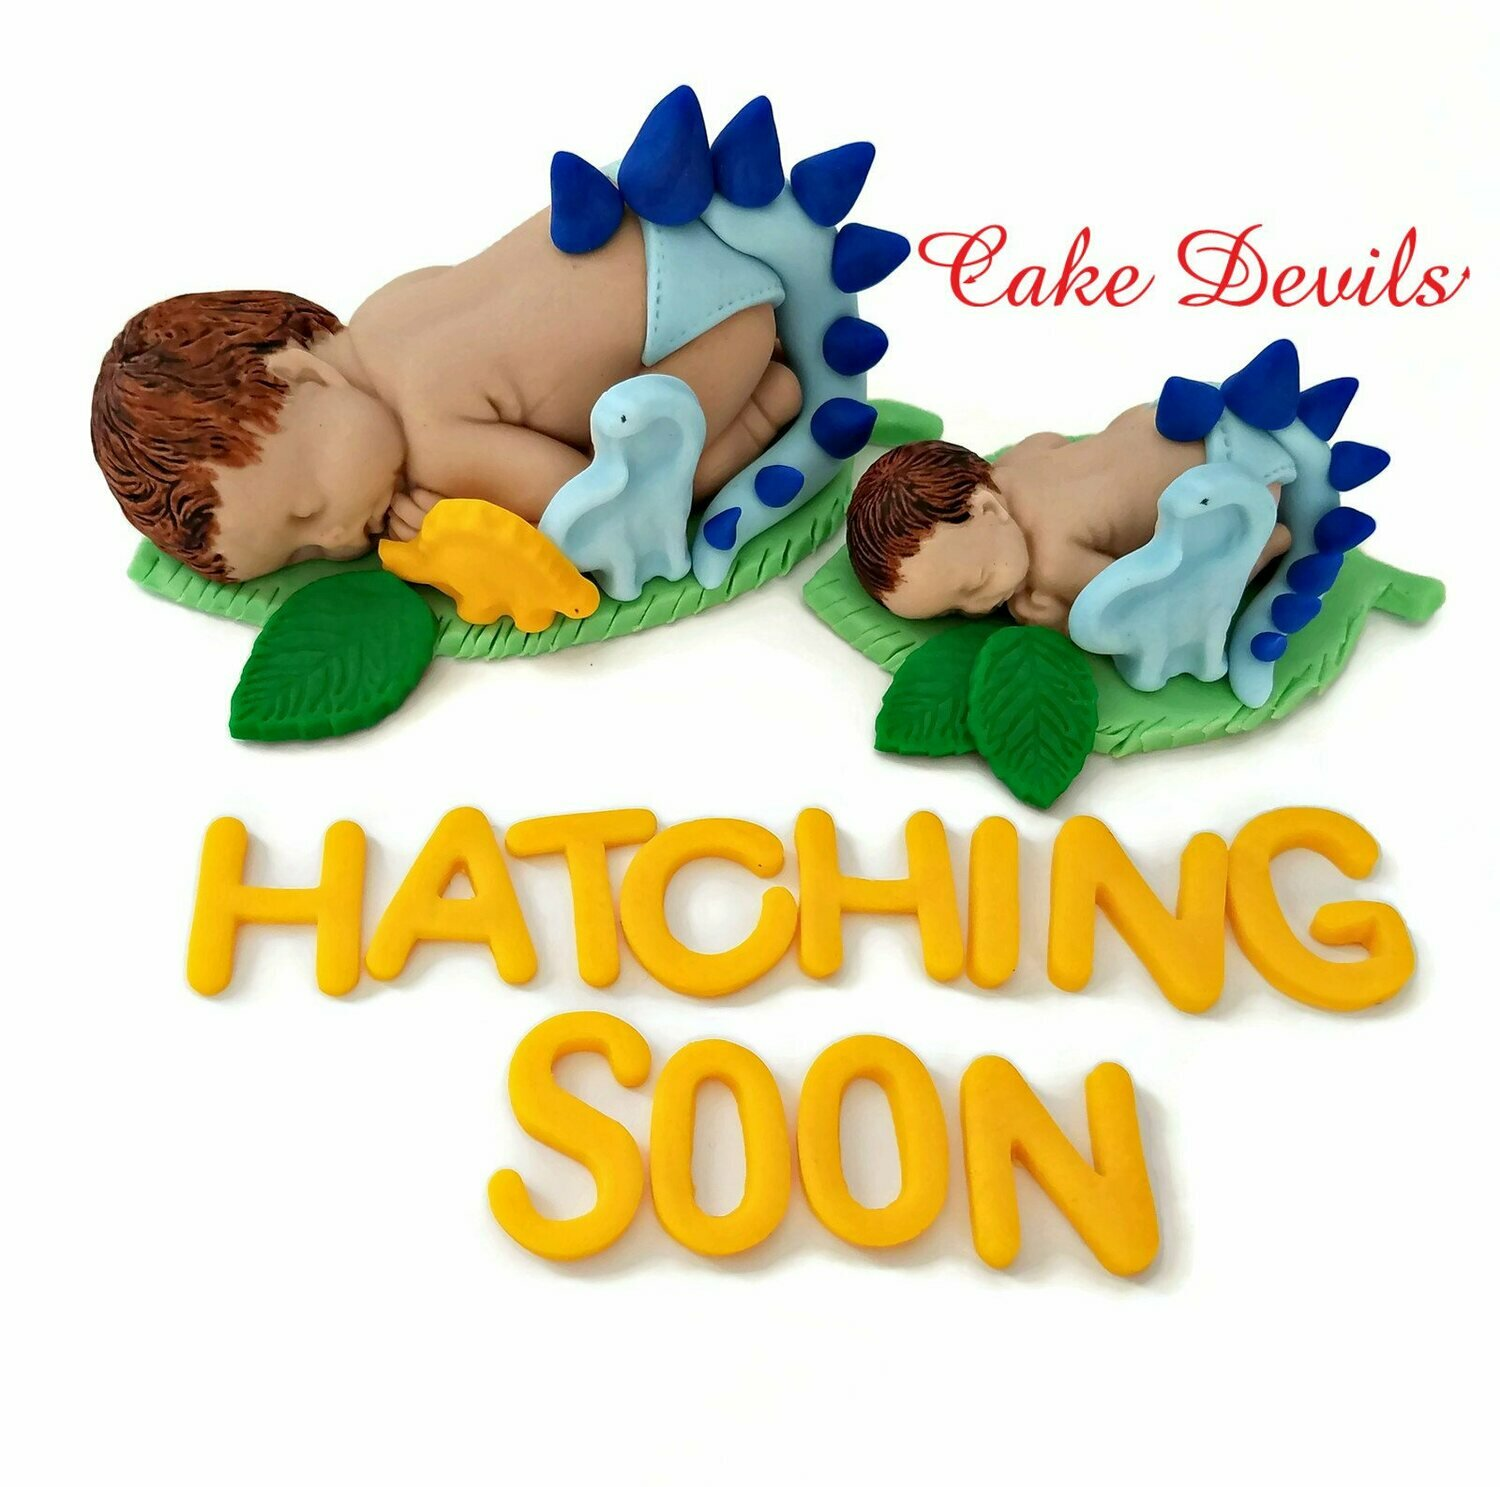 Dinosaur Baby Shower Cake Topper or a Fondant Sleeping baby in a Dinosaur Outfit